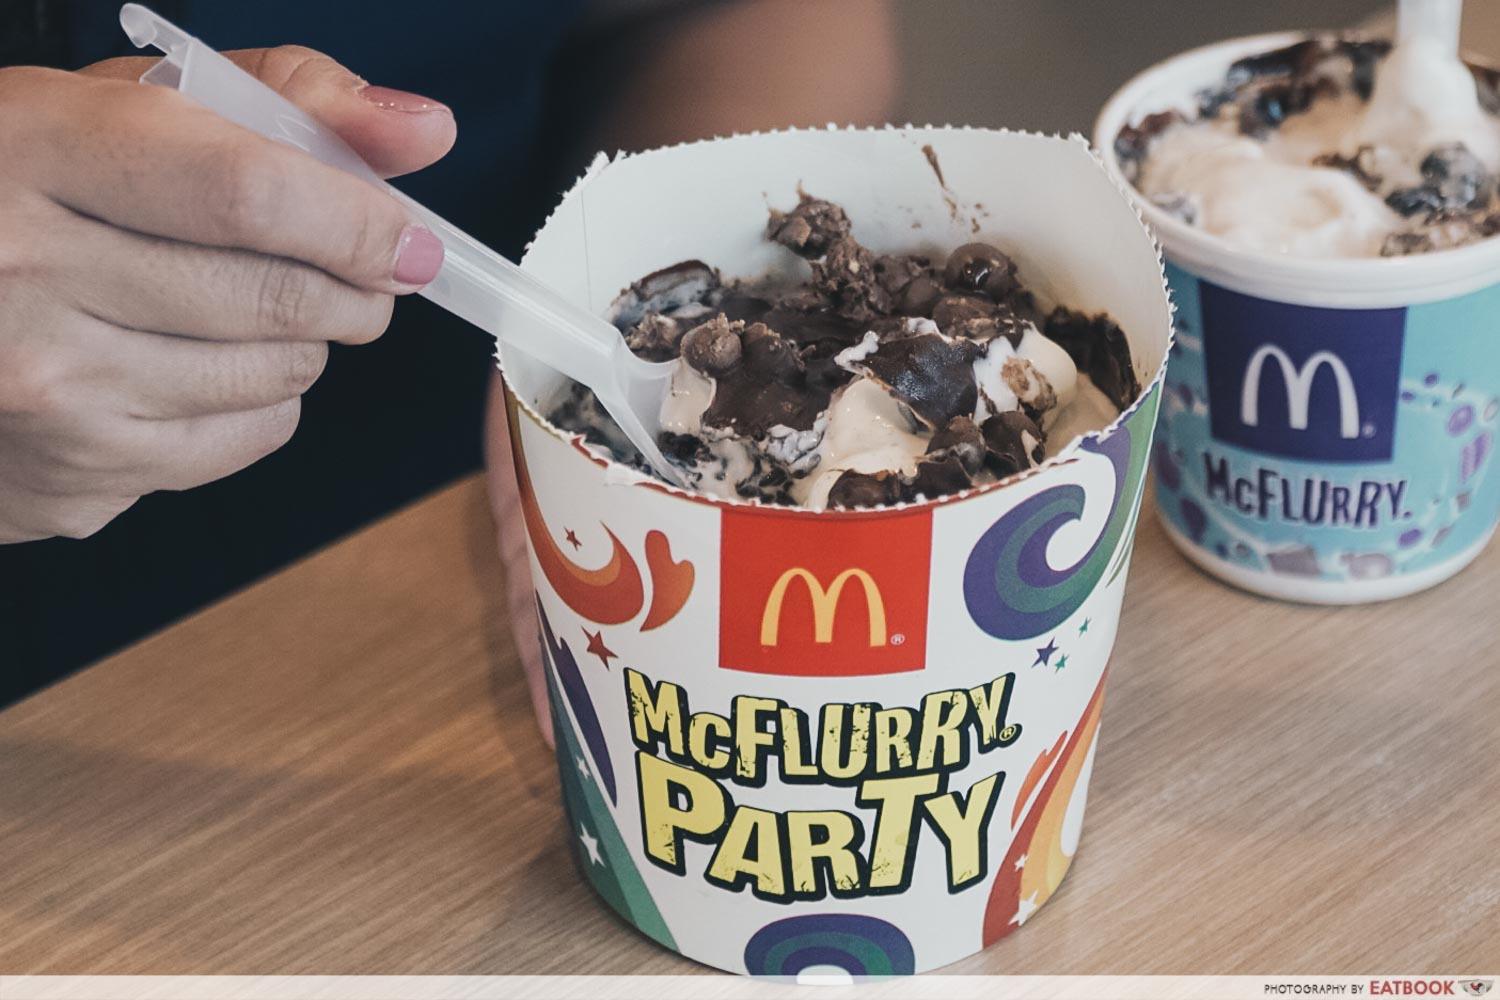 Mcdonald Malaysia New Dessert - Mcflurry Party